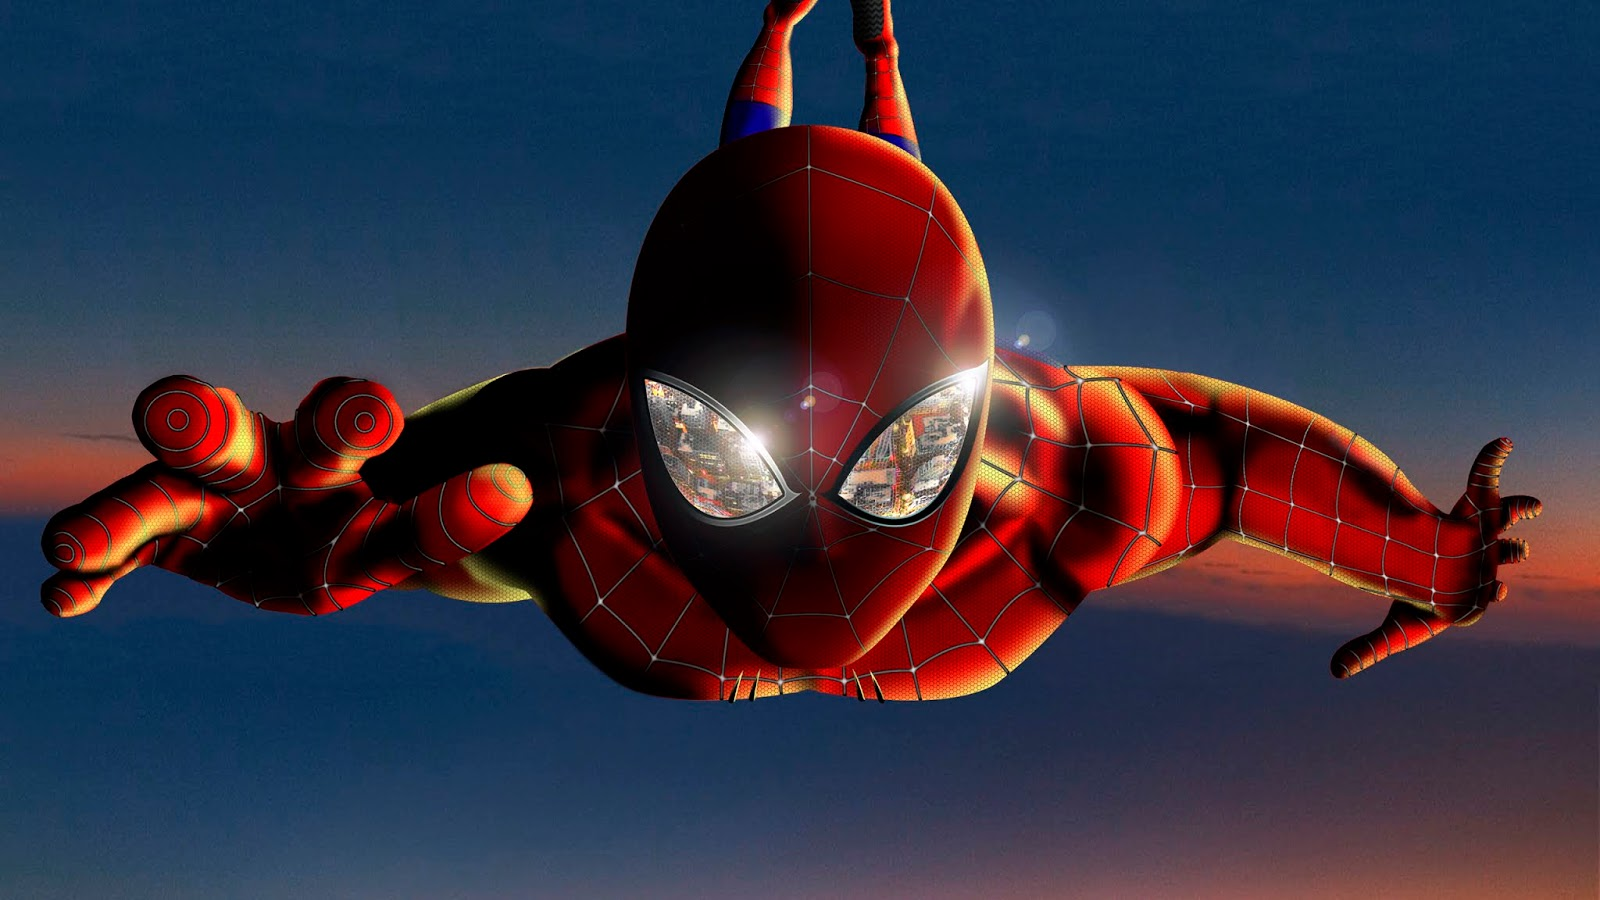 Free Download Top 10 Spider Man Full Hd 4k Wallpaper